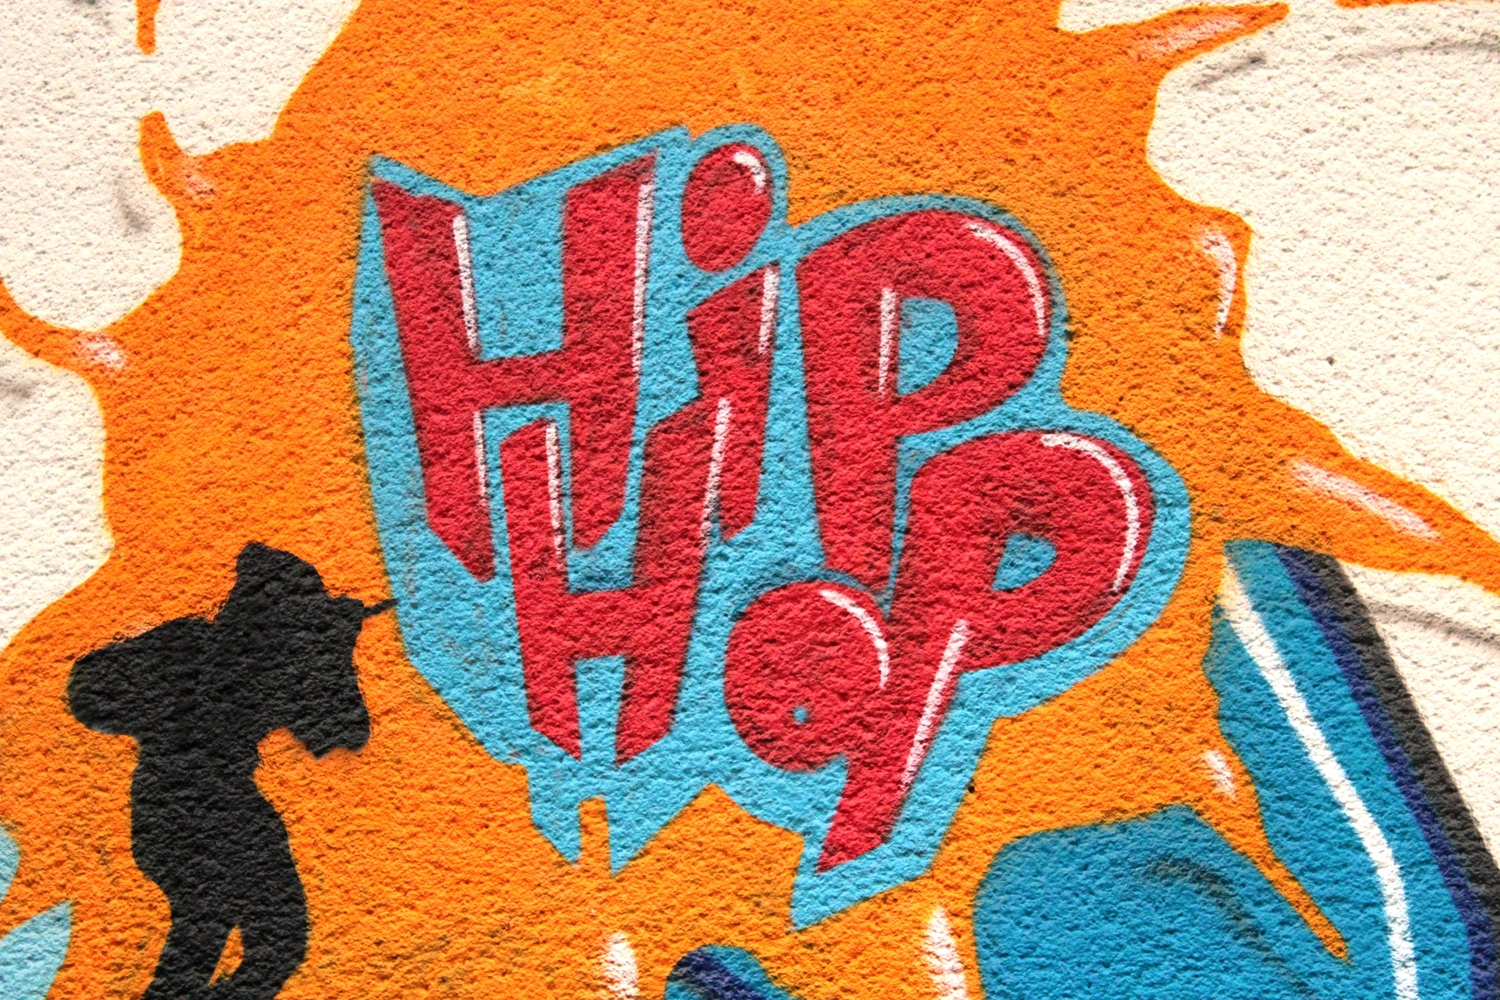 Graffiti that says Hip Hop